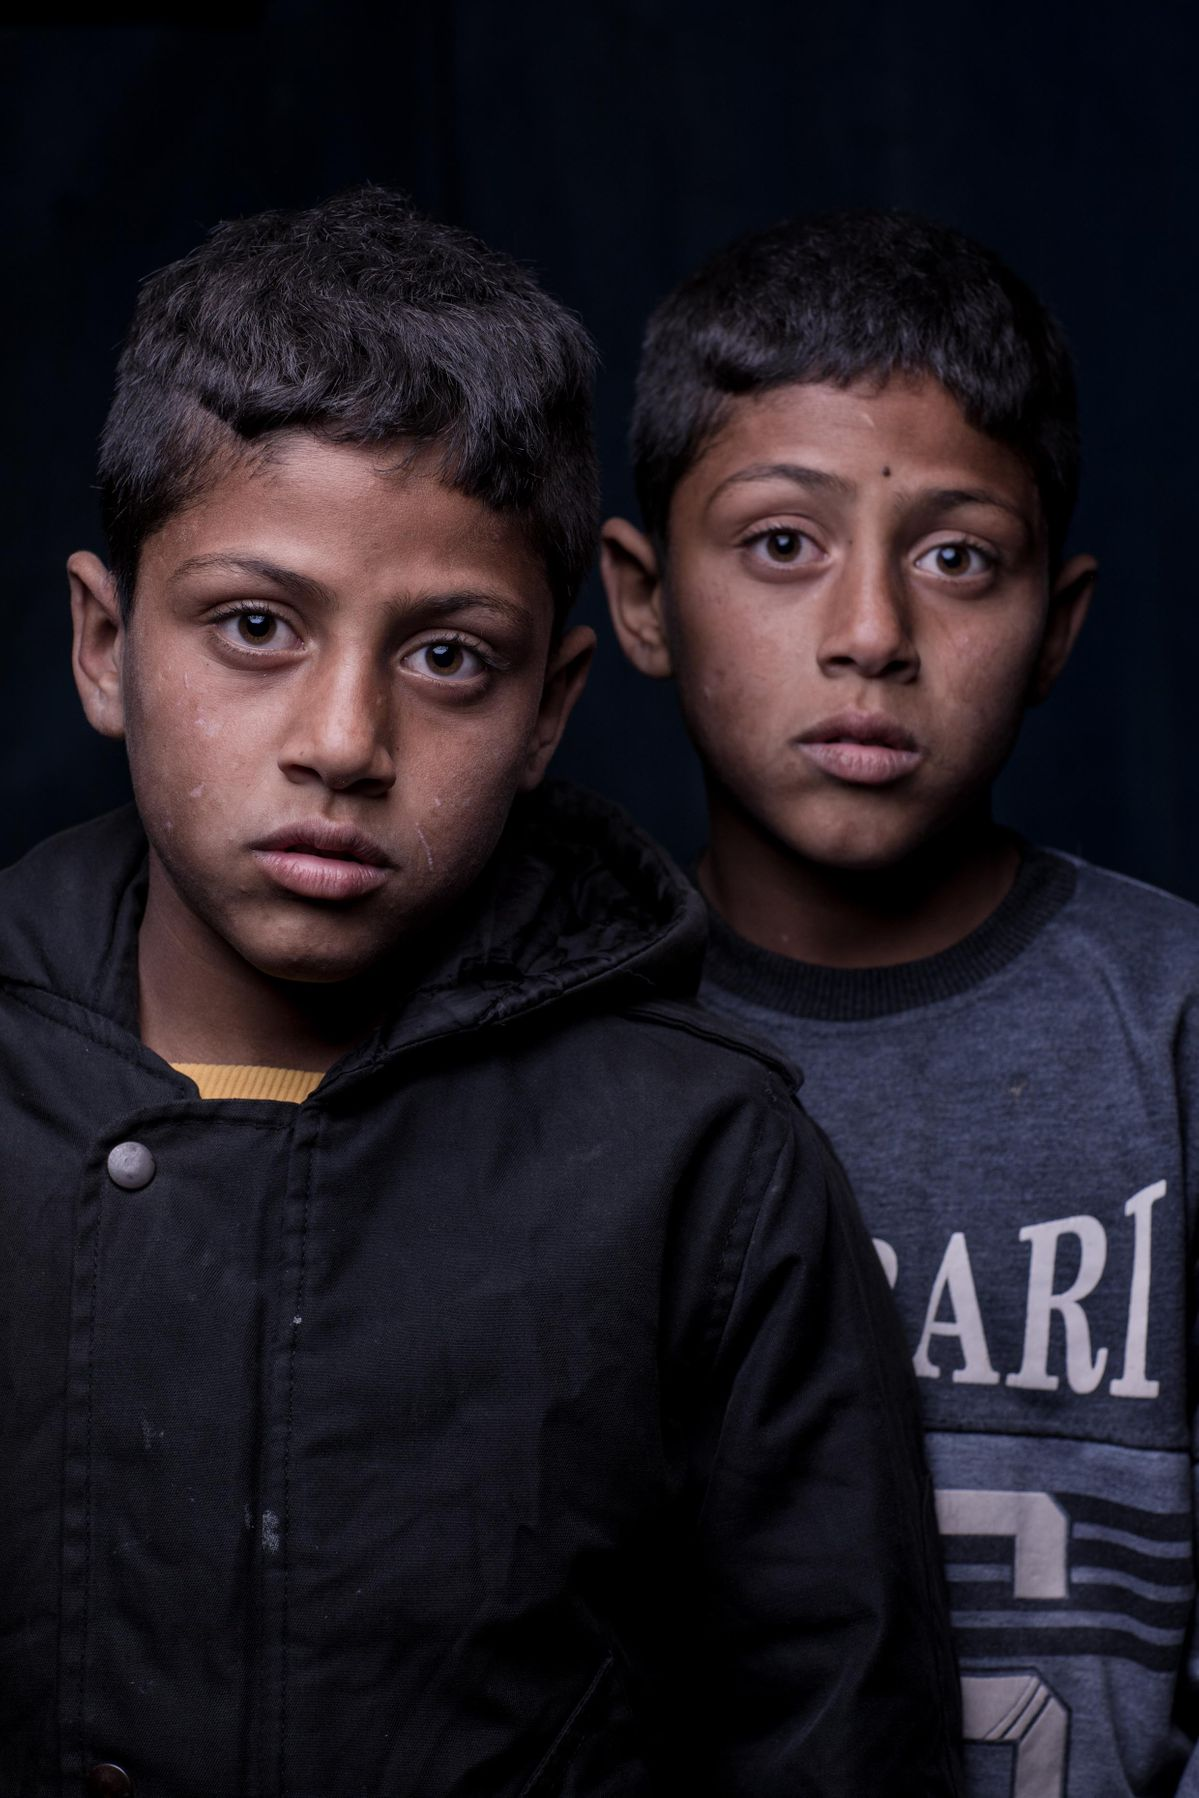 Portrait of a Syrian Twins in the Bekaa Valley, Lebanon. Refugee portrait by photographer Martin Thaulow.